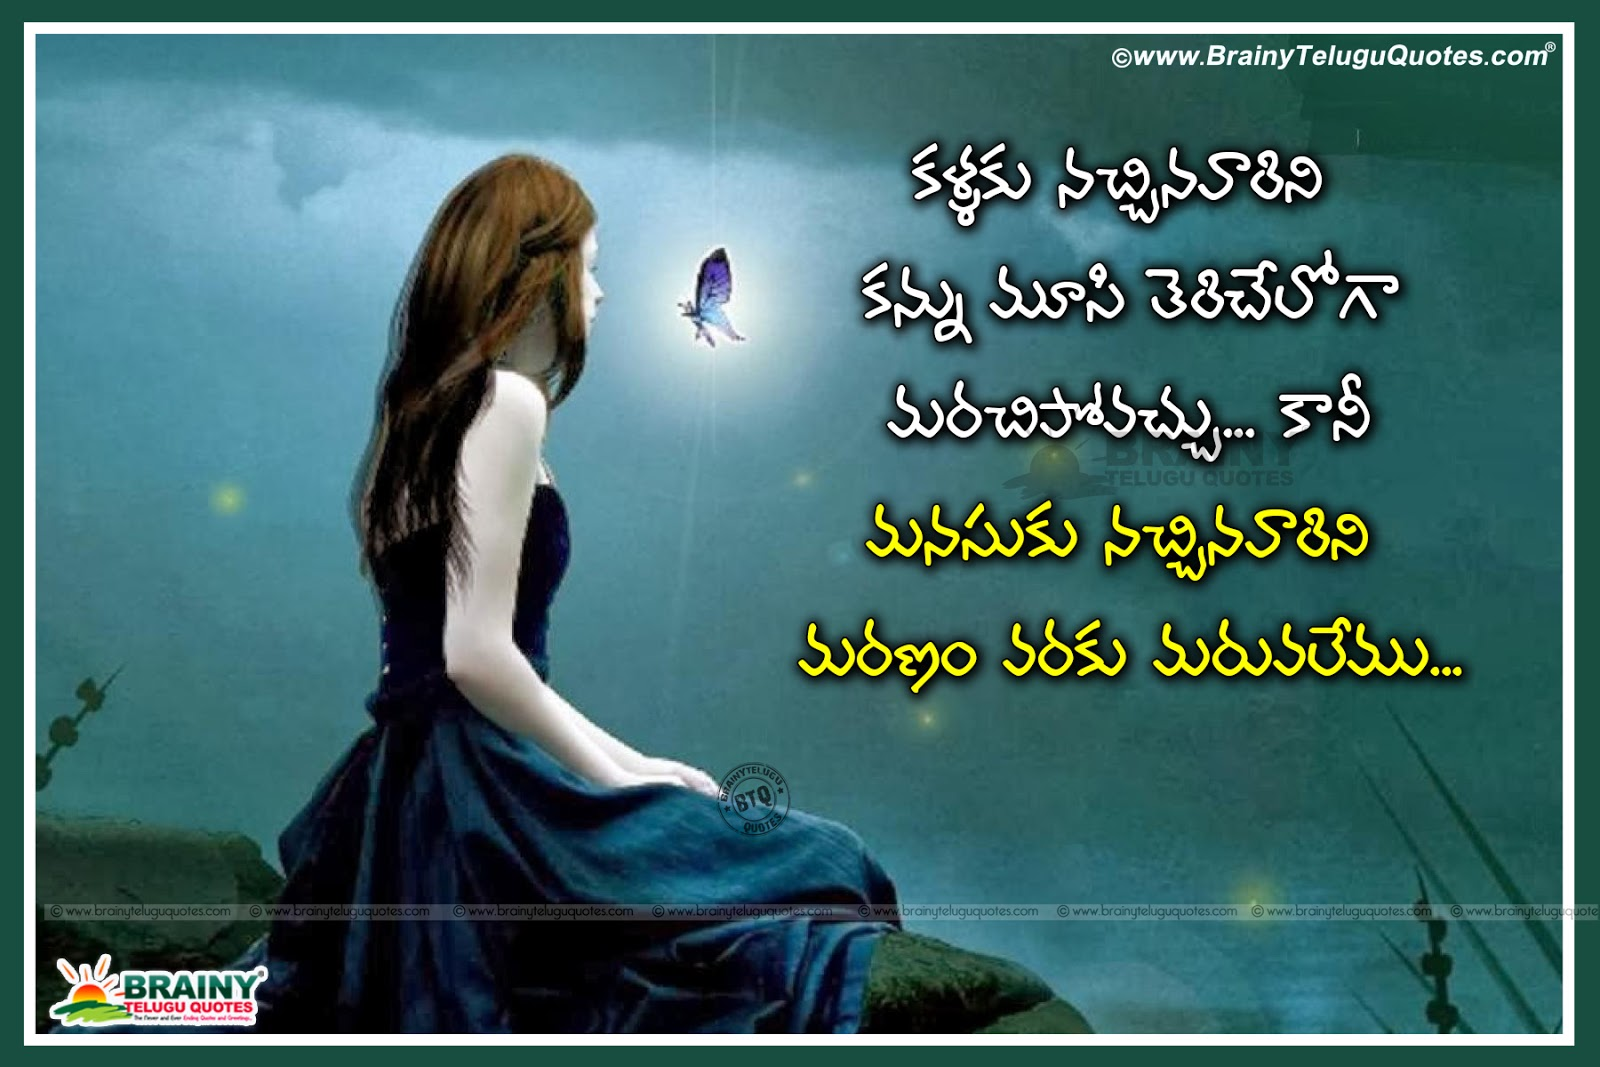 Best Love Quotes For Girlfriend In Telugu : love quotes in Telugu-best telugu love sayings-love thoughts in Telugu ...